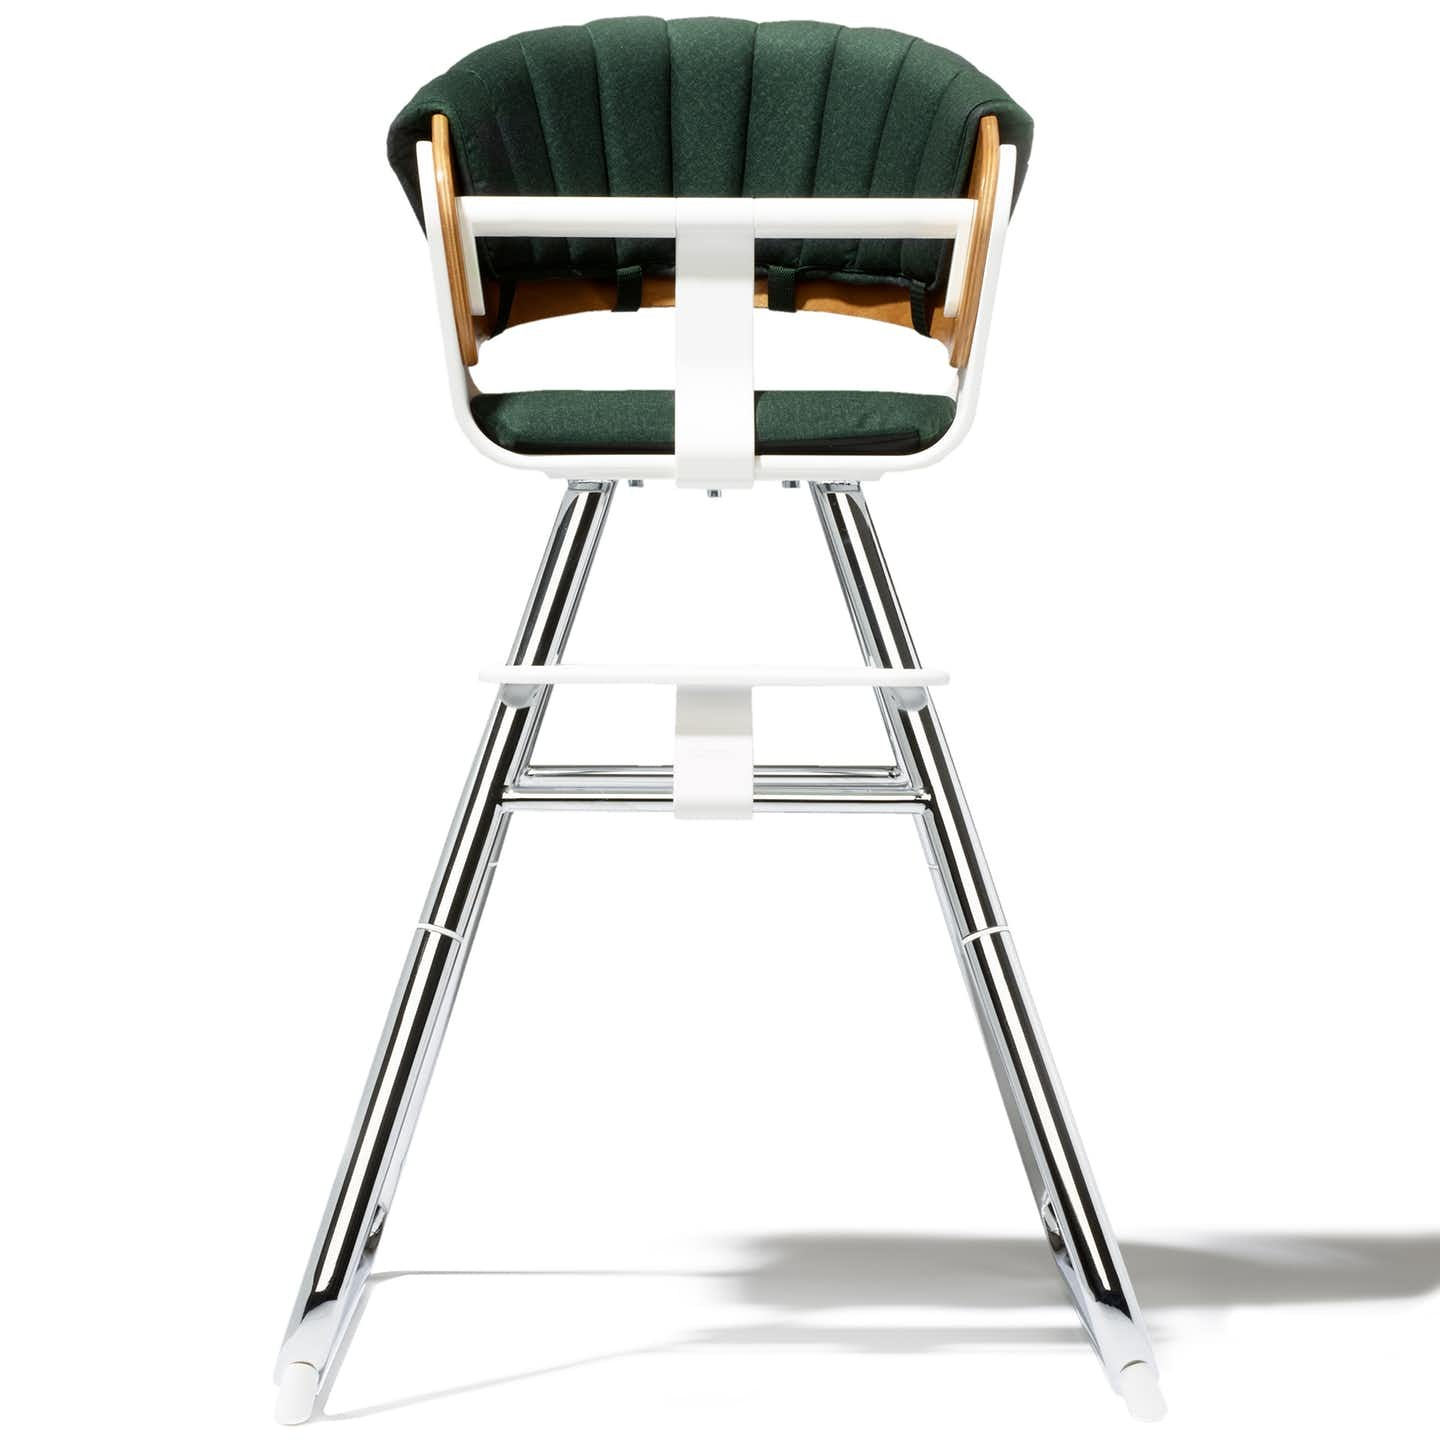 The 10 most stylish high chairs the-baby-room-icandy-mi-chair-and-comfort-pack-green